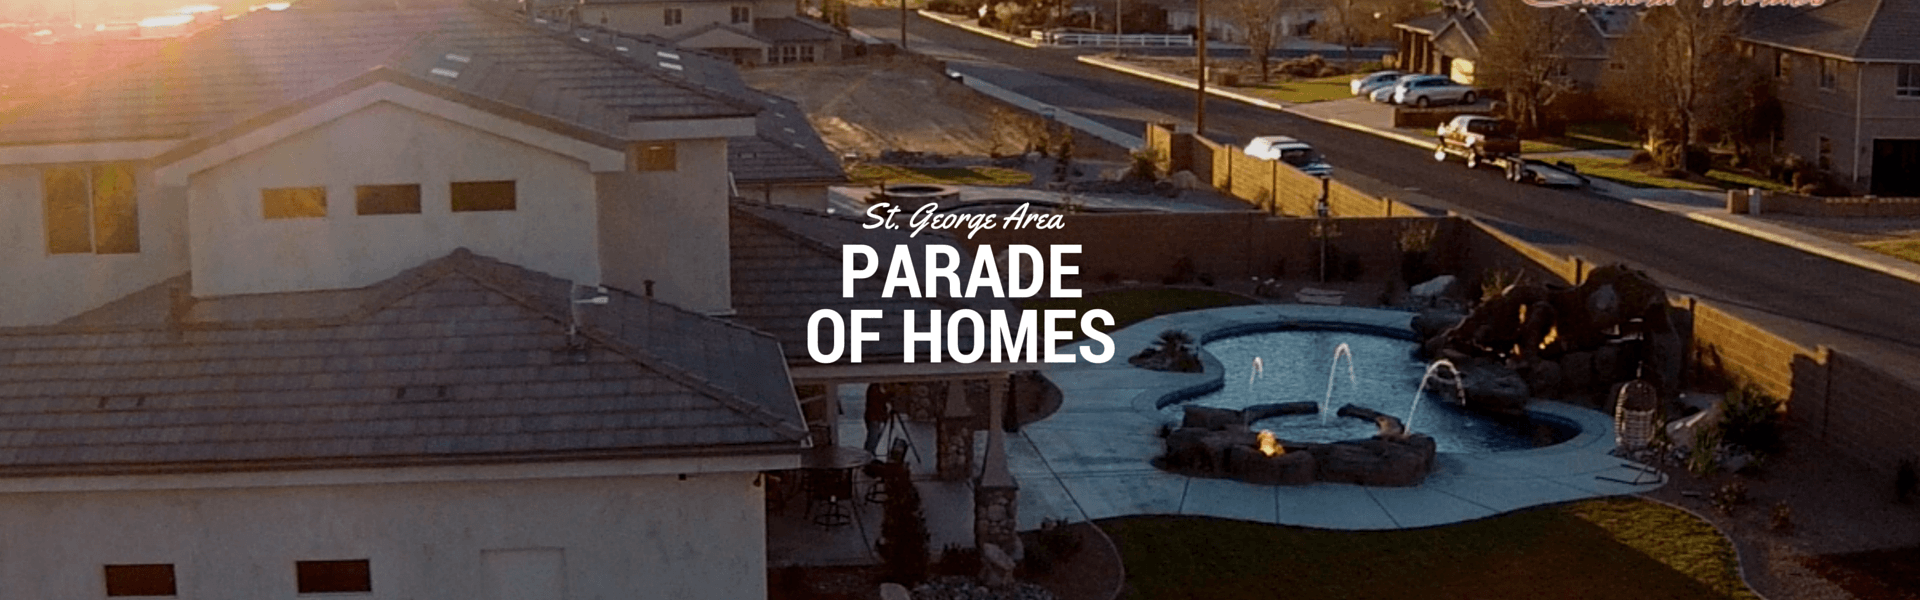 28 Eye-Popping Reasons to see the St. George Area Parade of Homes